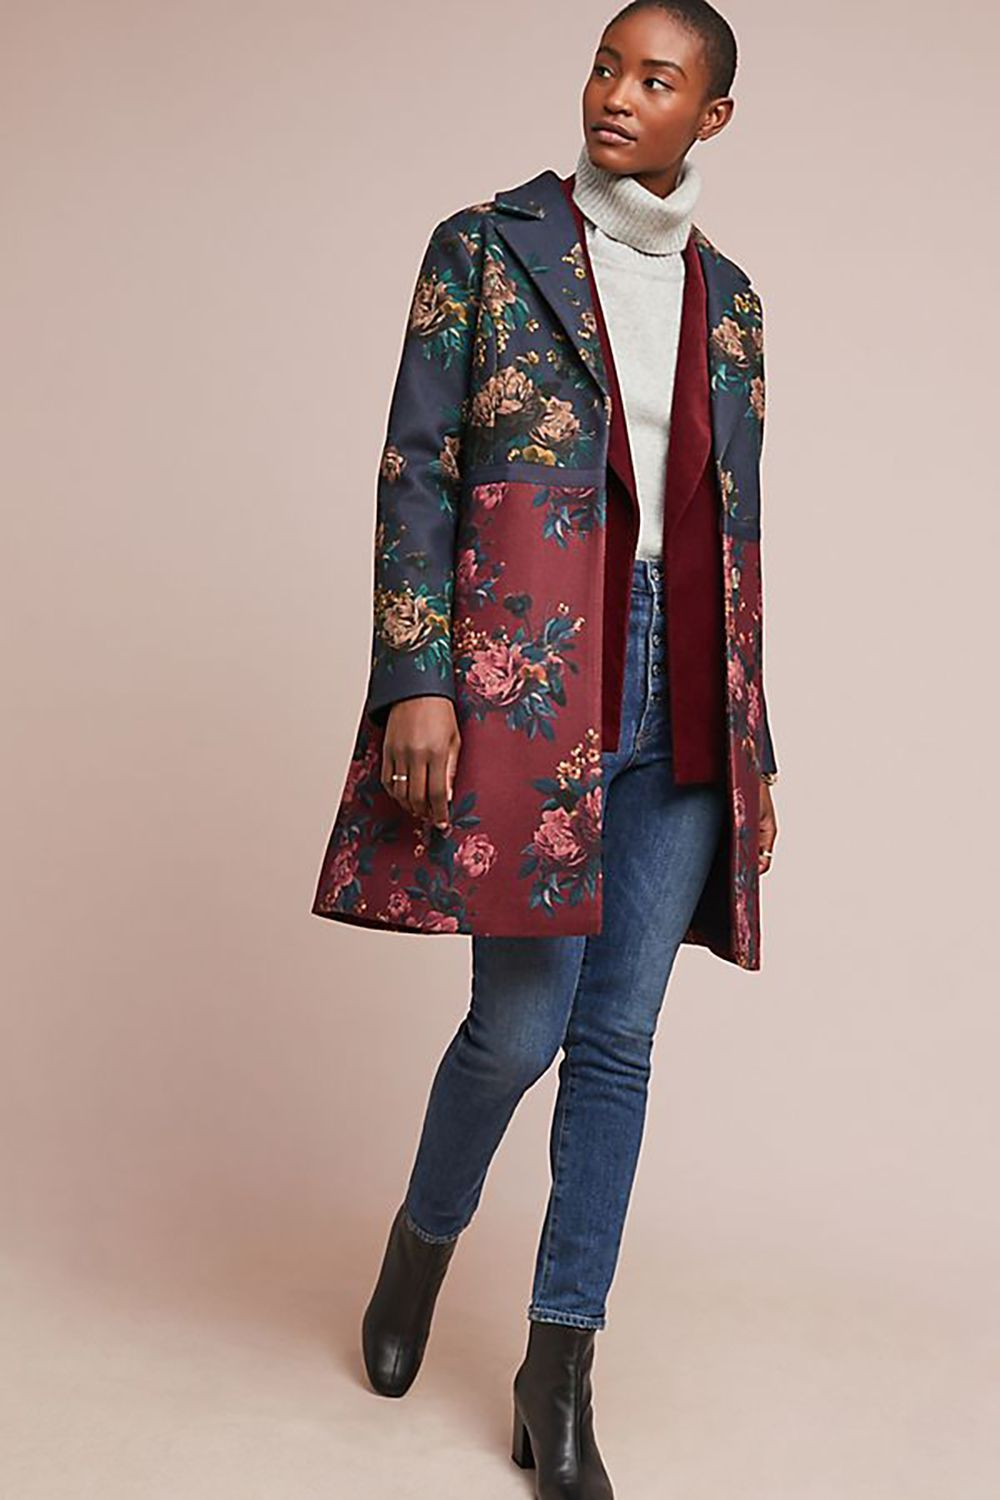 Feminine Floral Eva Franco Anthropologie Anthropologie $129.95 SHOP IT Thanks to good ol' global warming, spring always comes with that 50-degree wildcard. That's why this elegant floral coat exists.